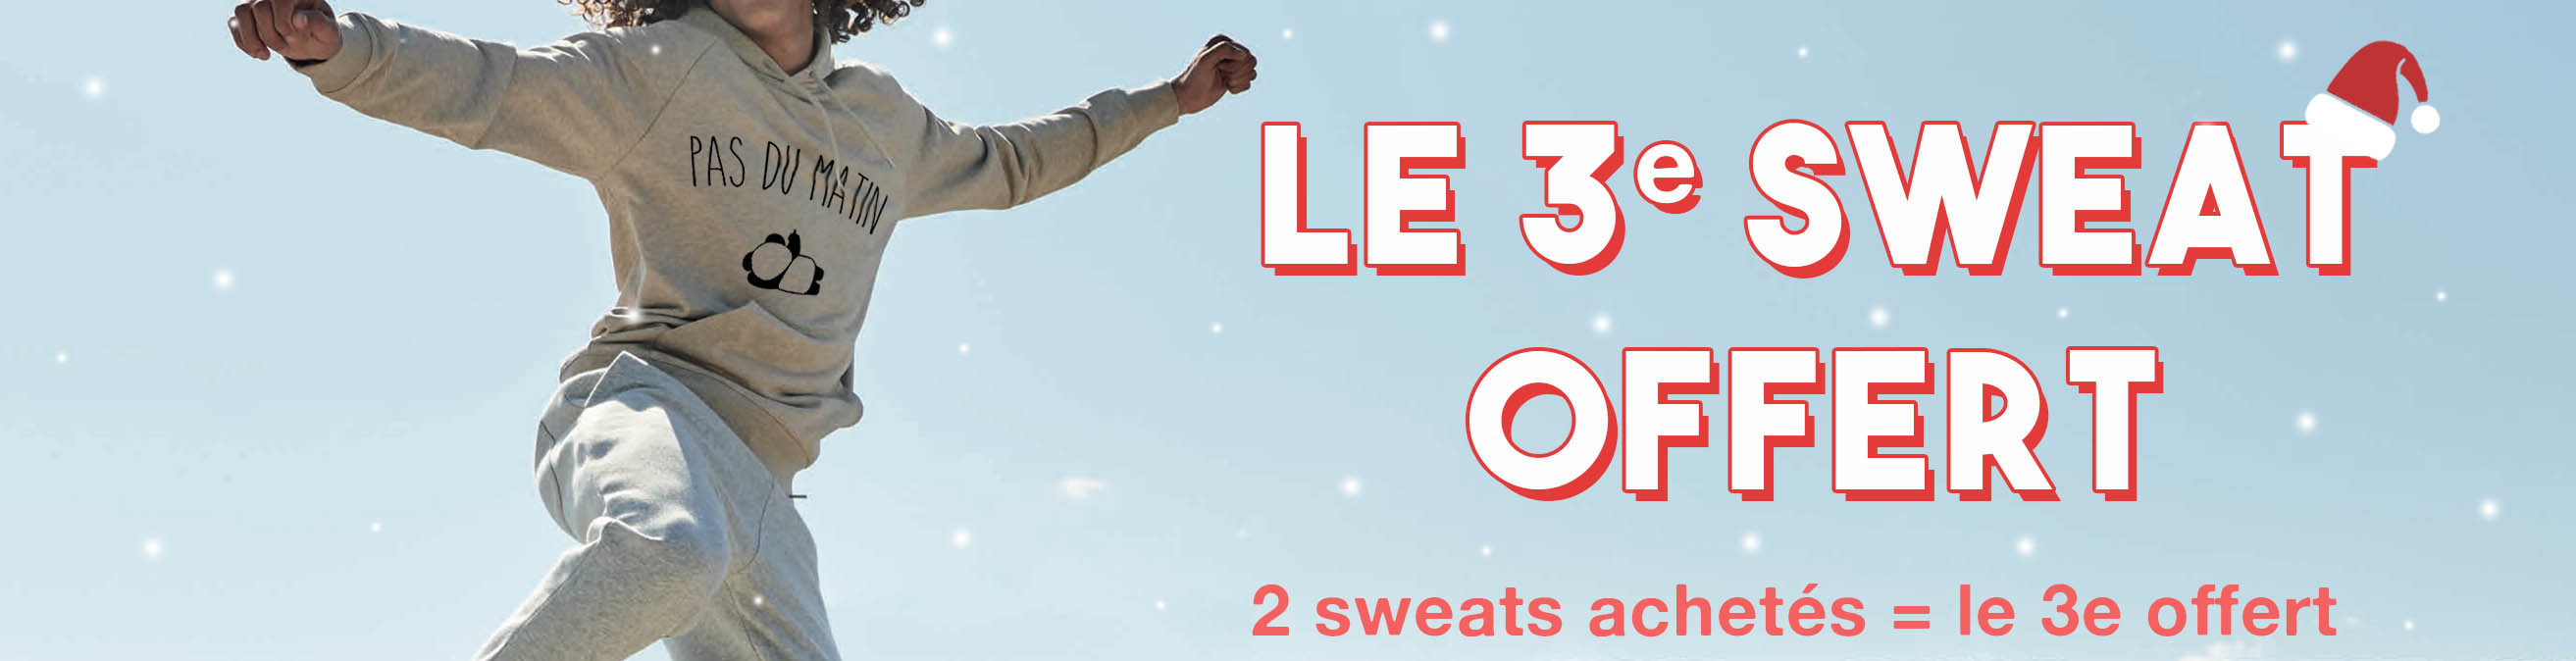 3e sweat offert